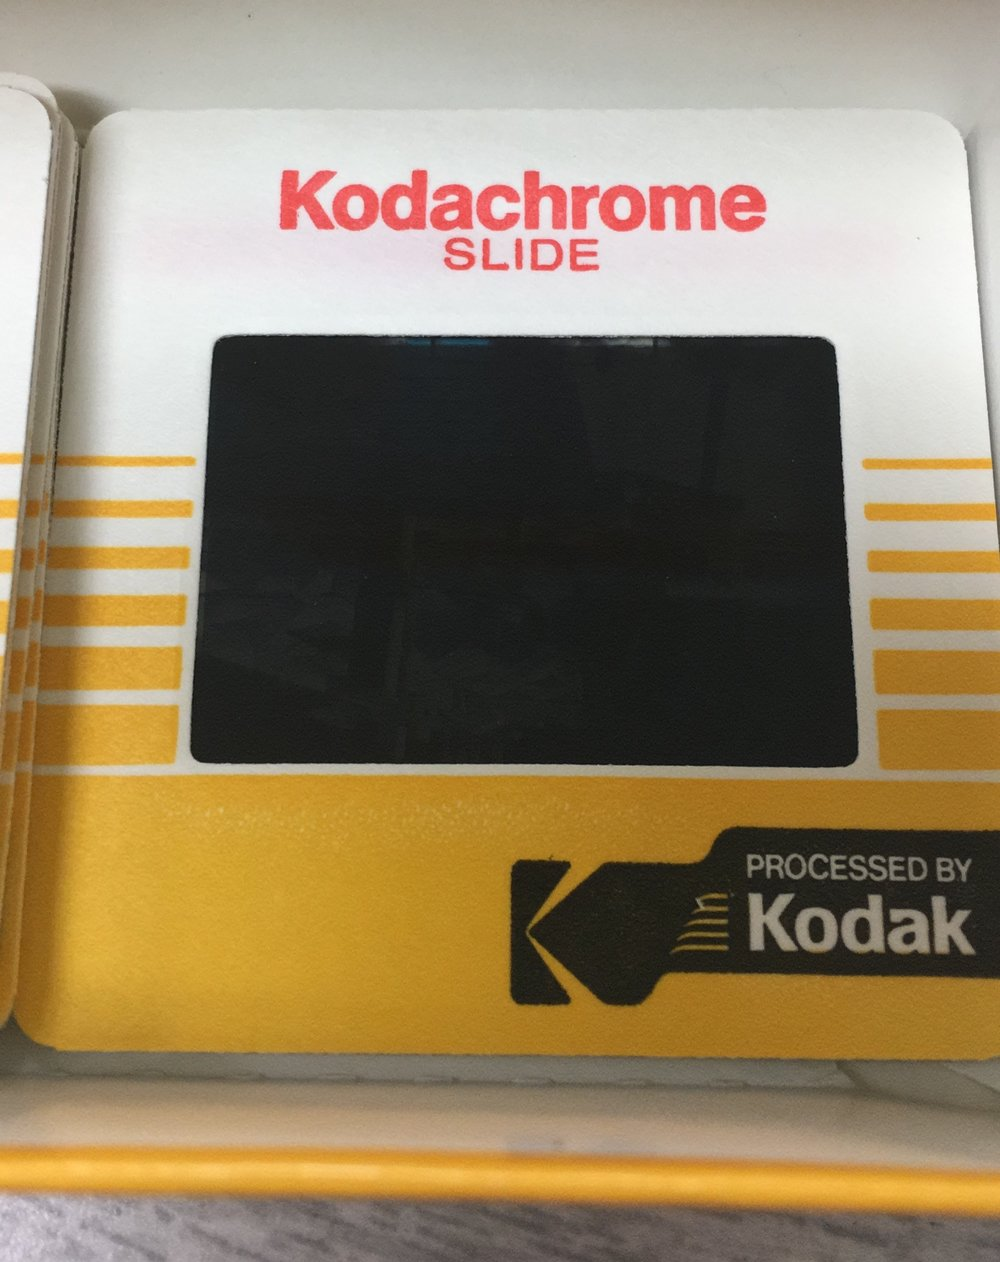 kodachrome_slide.JPG